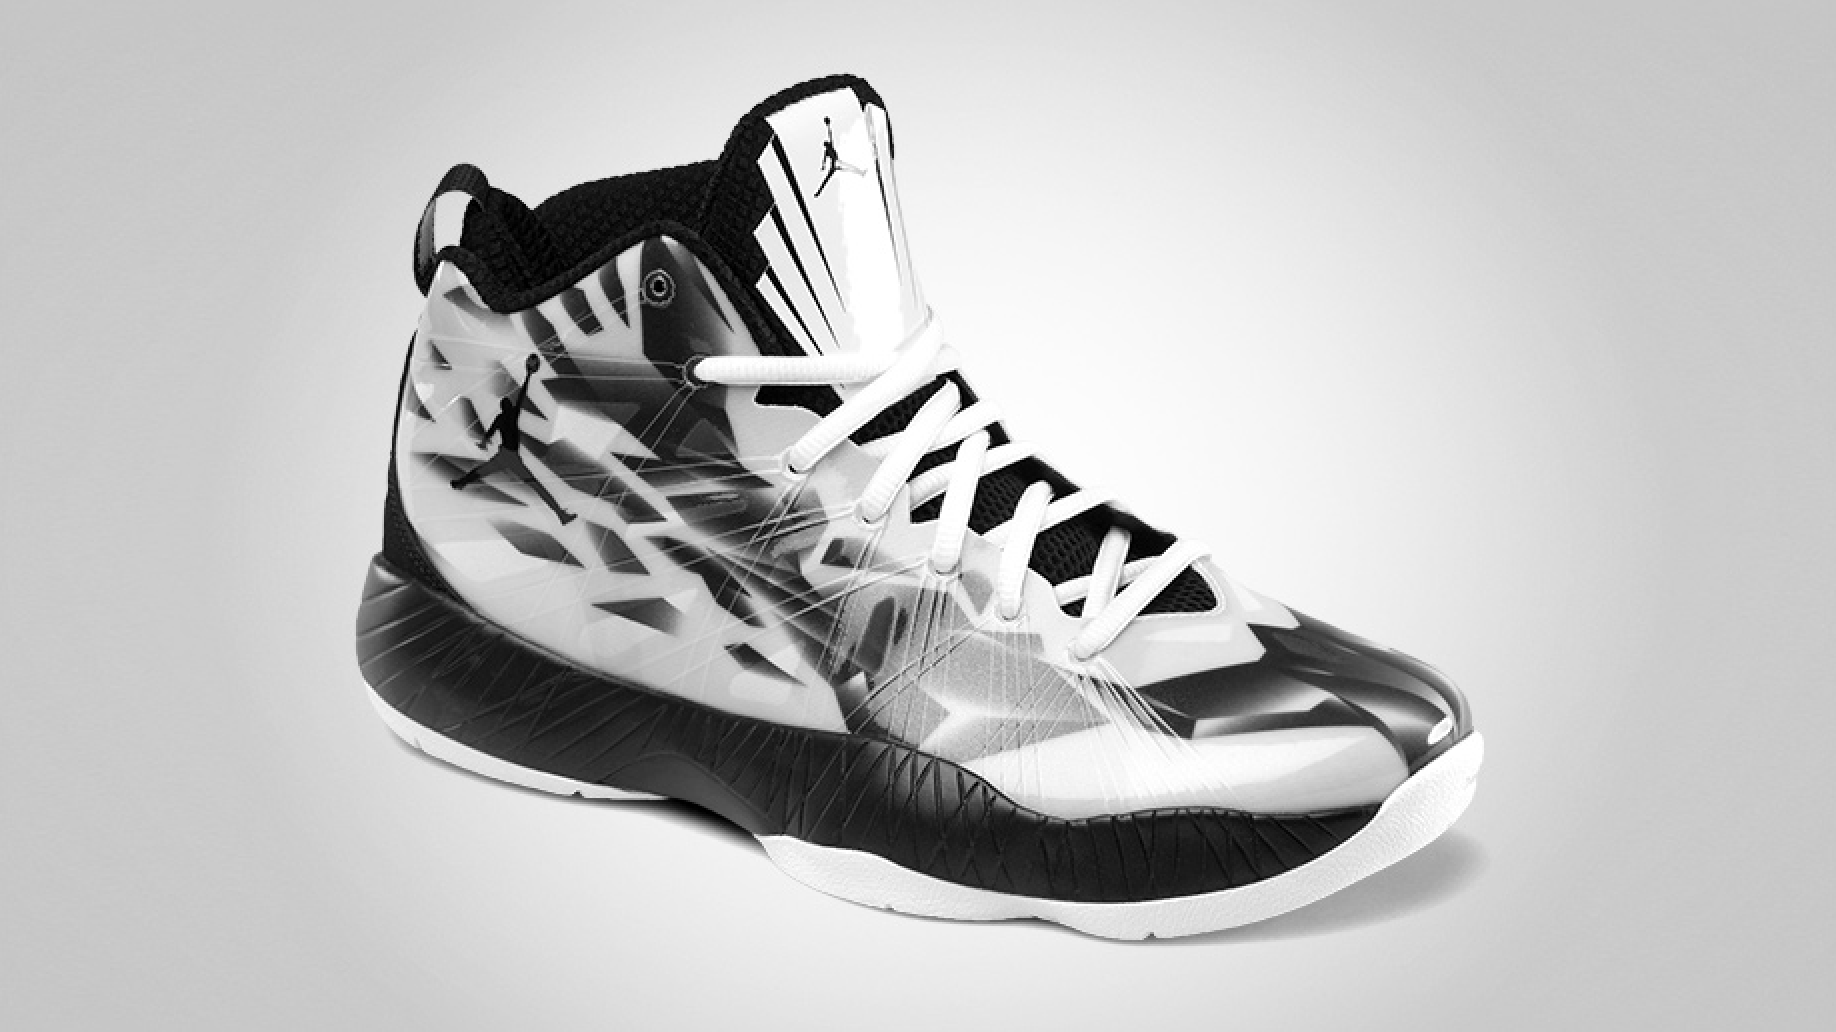 Air Jordan 2012 'White/Black'